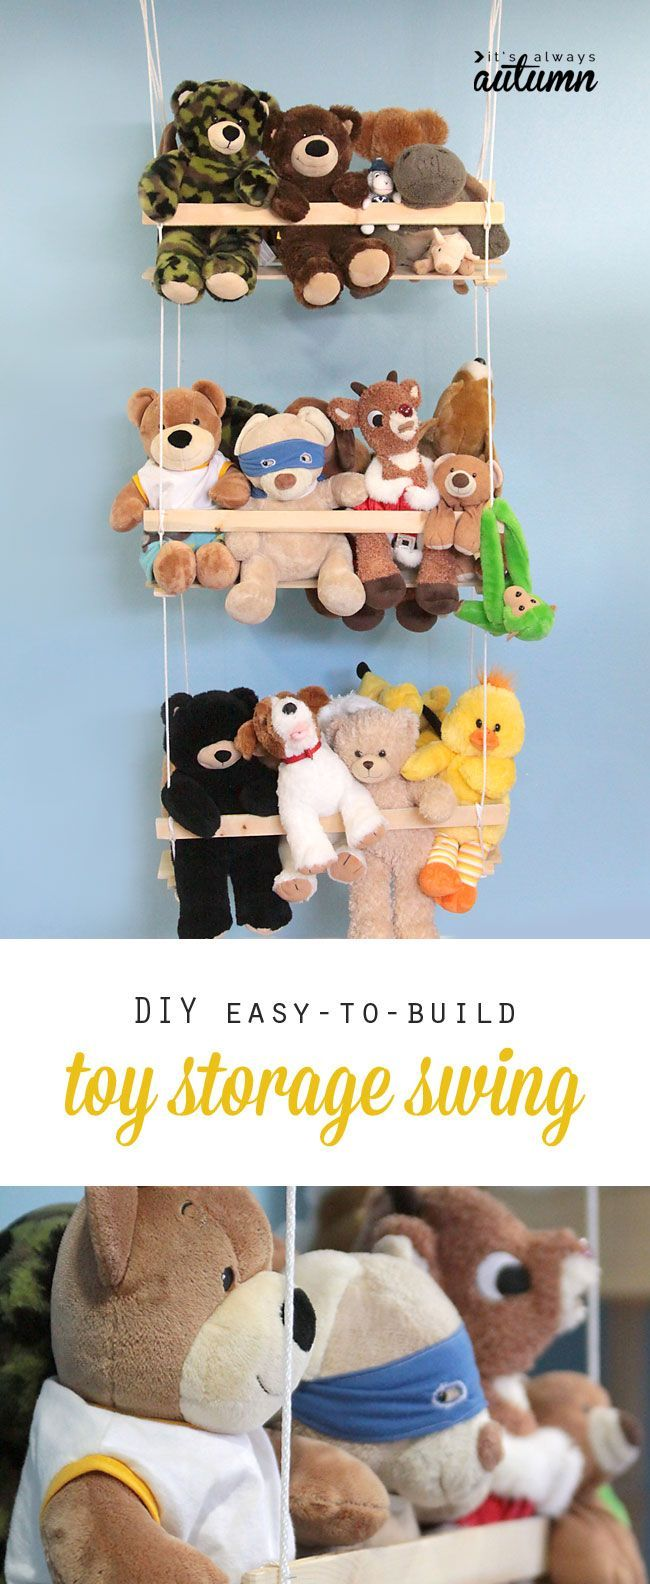 hanging toy storage to organize the stuffed animals get those stuffed animals off the ground with this easy to build DIY hanging toy storage swingget those stuffed animals off the ground with this easy to build DIY hanging toy storage swing